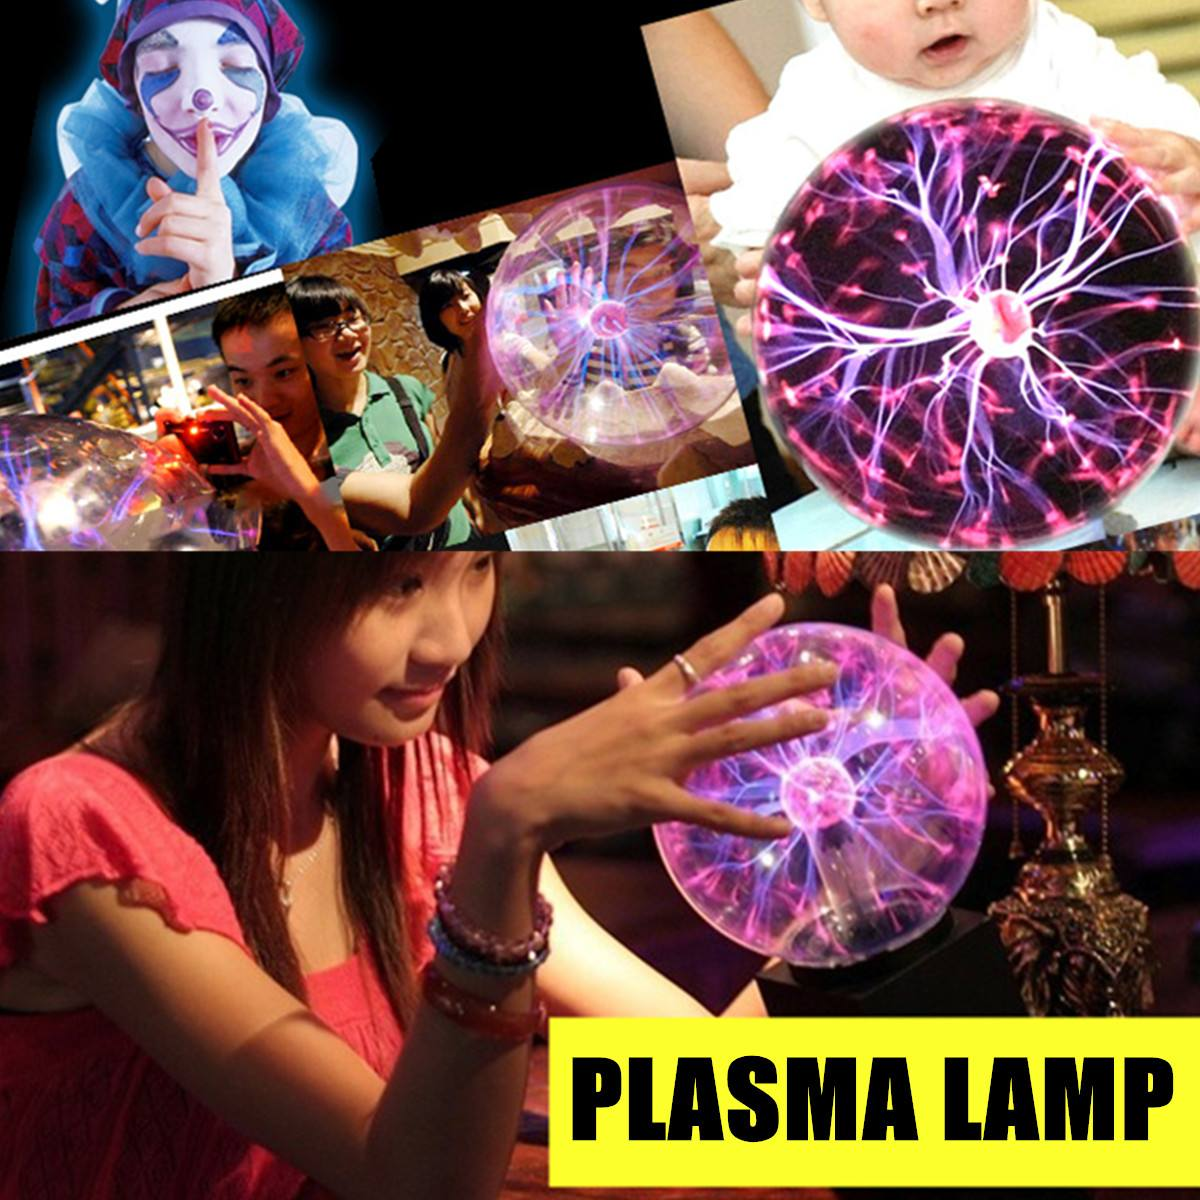 Plasma-Lightning Ball 5/6/8 Inch Magic Lighting Sphere Lamp Light Touch-Sensitive EU Plug Crystal Table Lamp Novelty Night Color